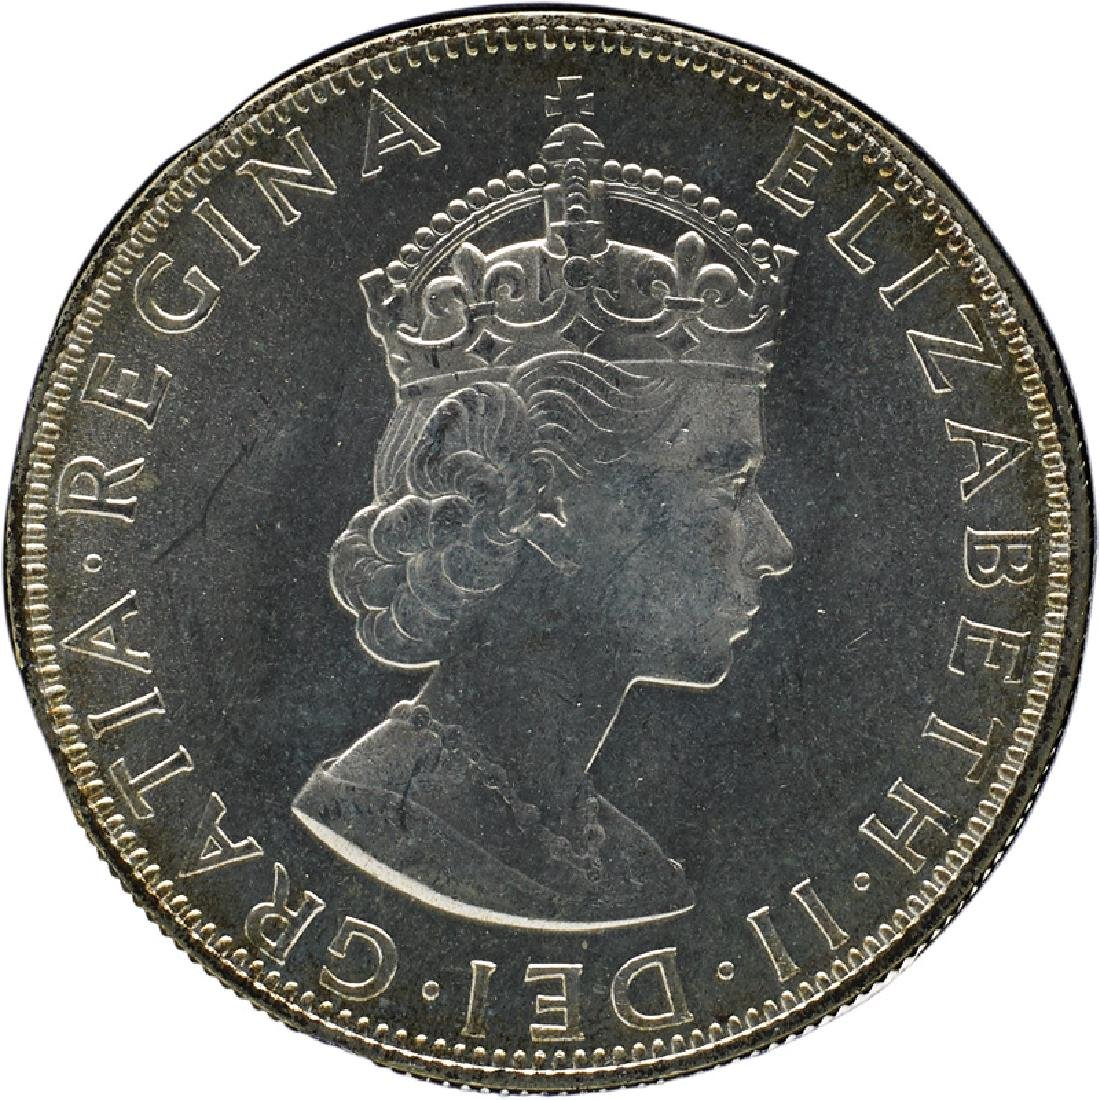 COINS OF GREAT BRITAIN AND TERRITORIES